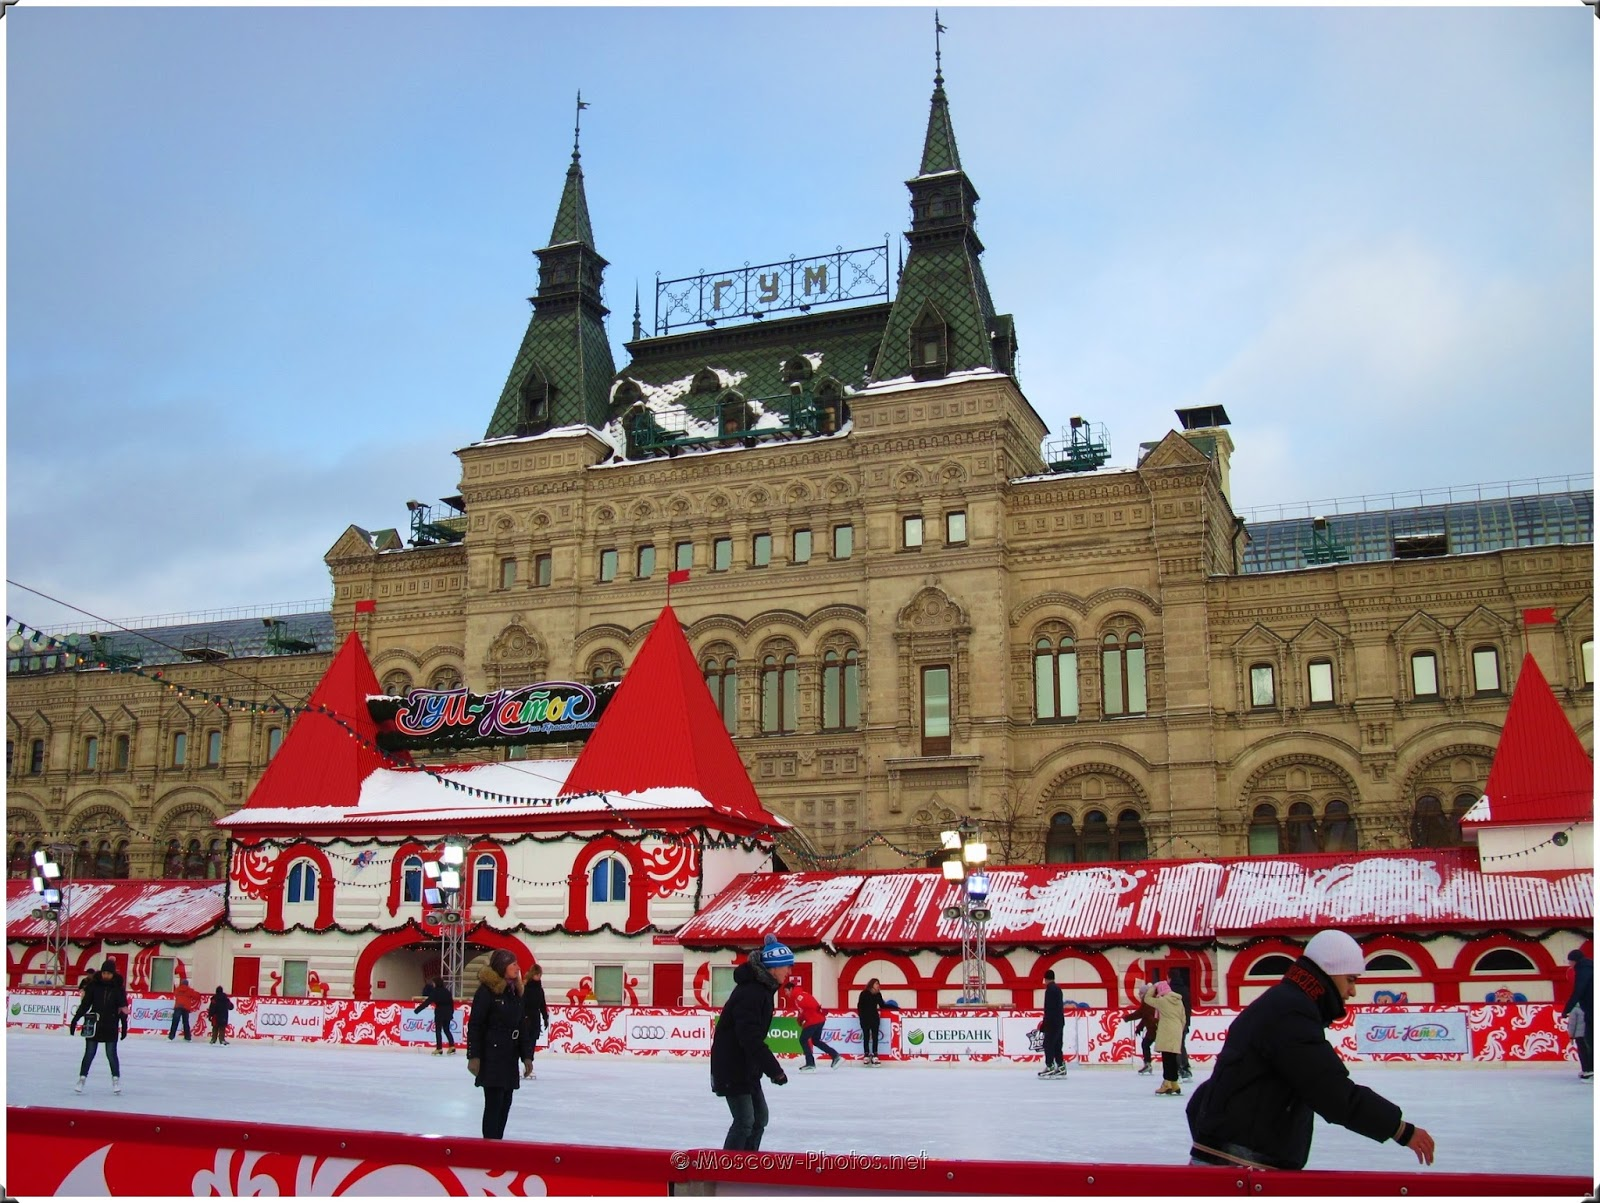 Skating rink on the Red Square